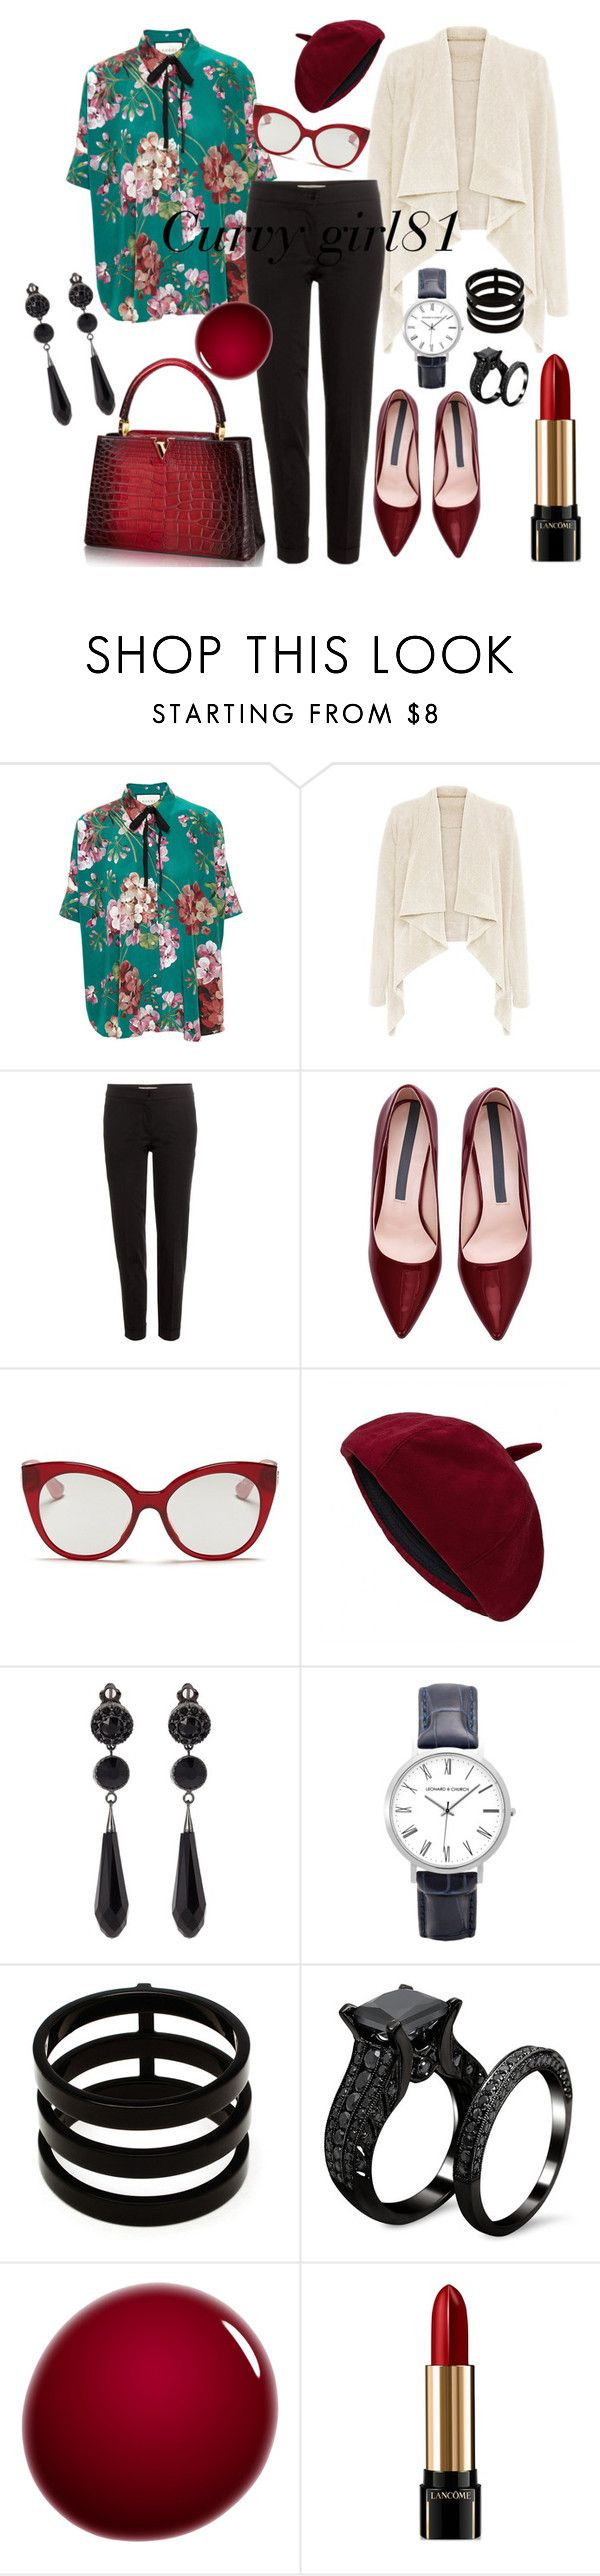 """pretty red flowers"" by pretty-girl81 on Polyvore featuring moda, Gucci, Etro, Miu Miu, Givenchy, Repossi, NARS Cosmetics, Lancôme, women's clothing e women"